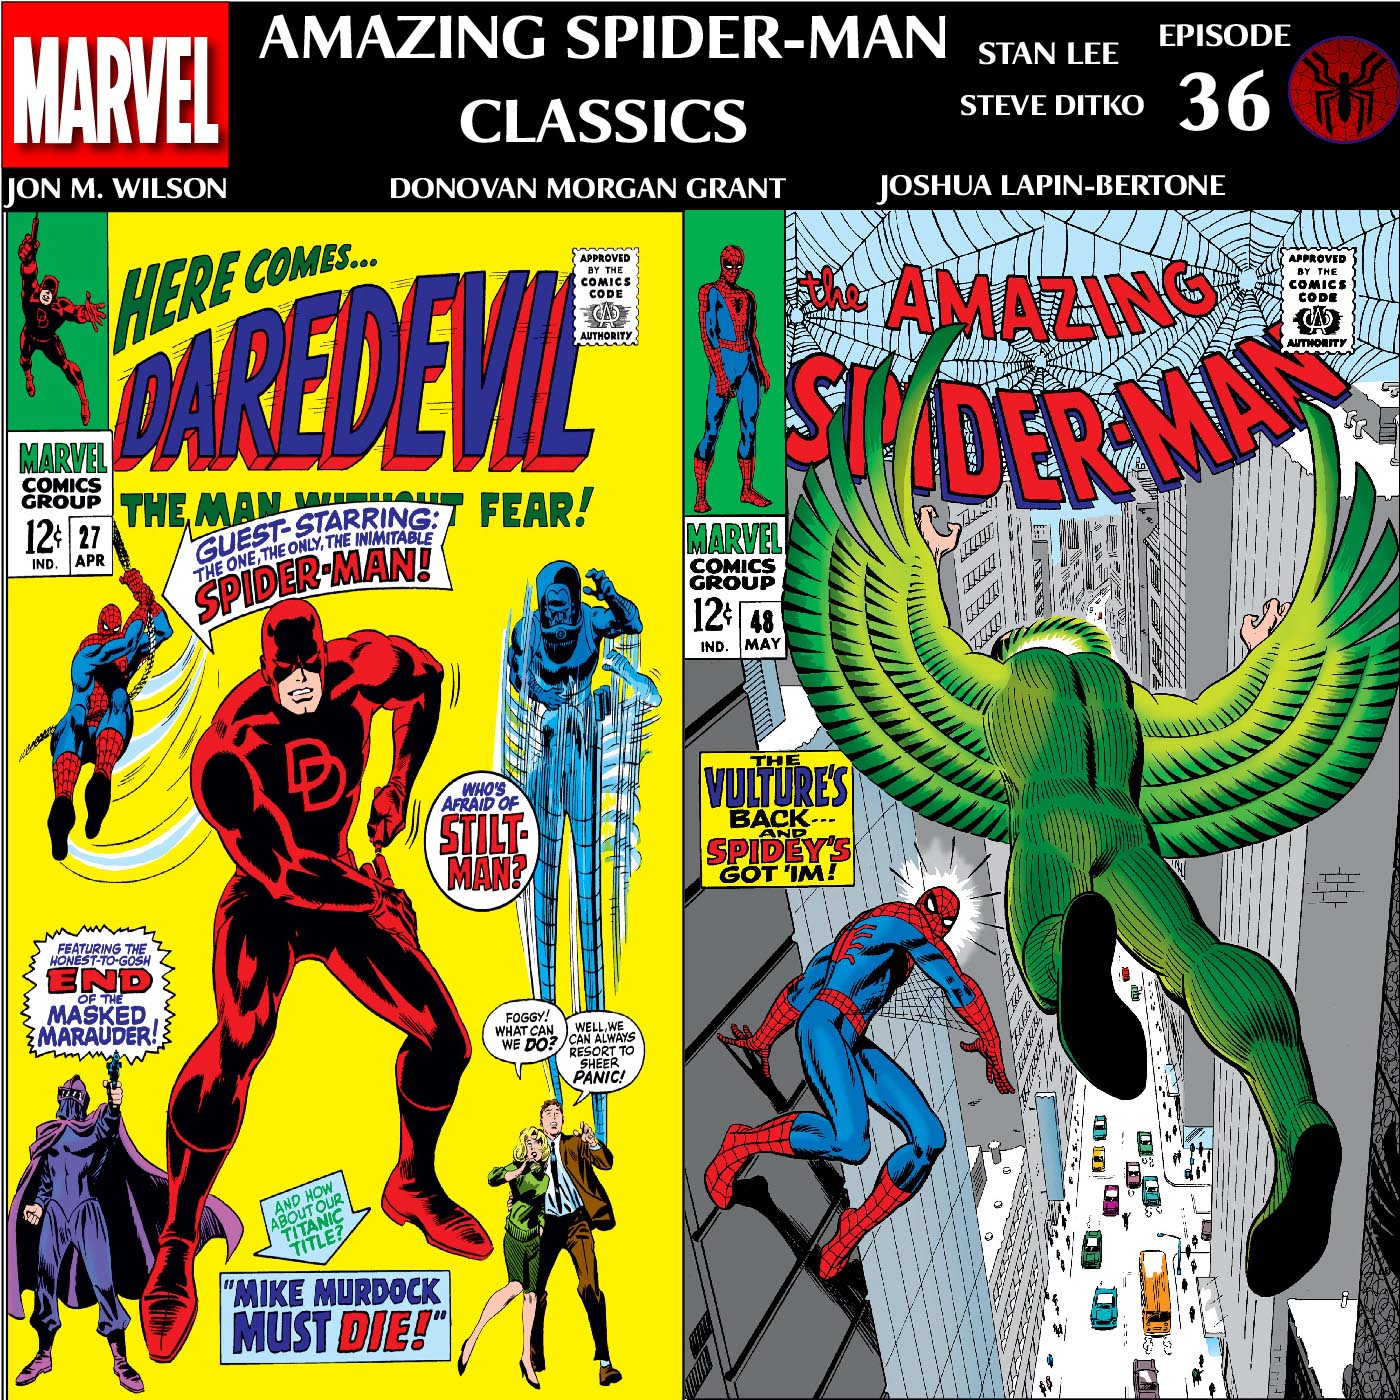 ASM Classics Episode 36: ASM #48 & Daredevil #27